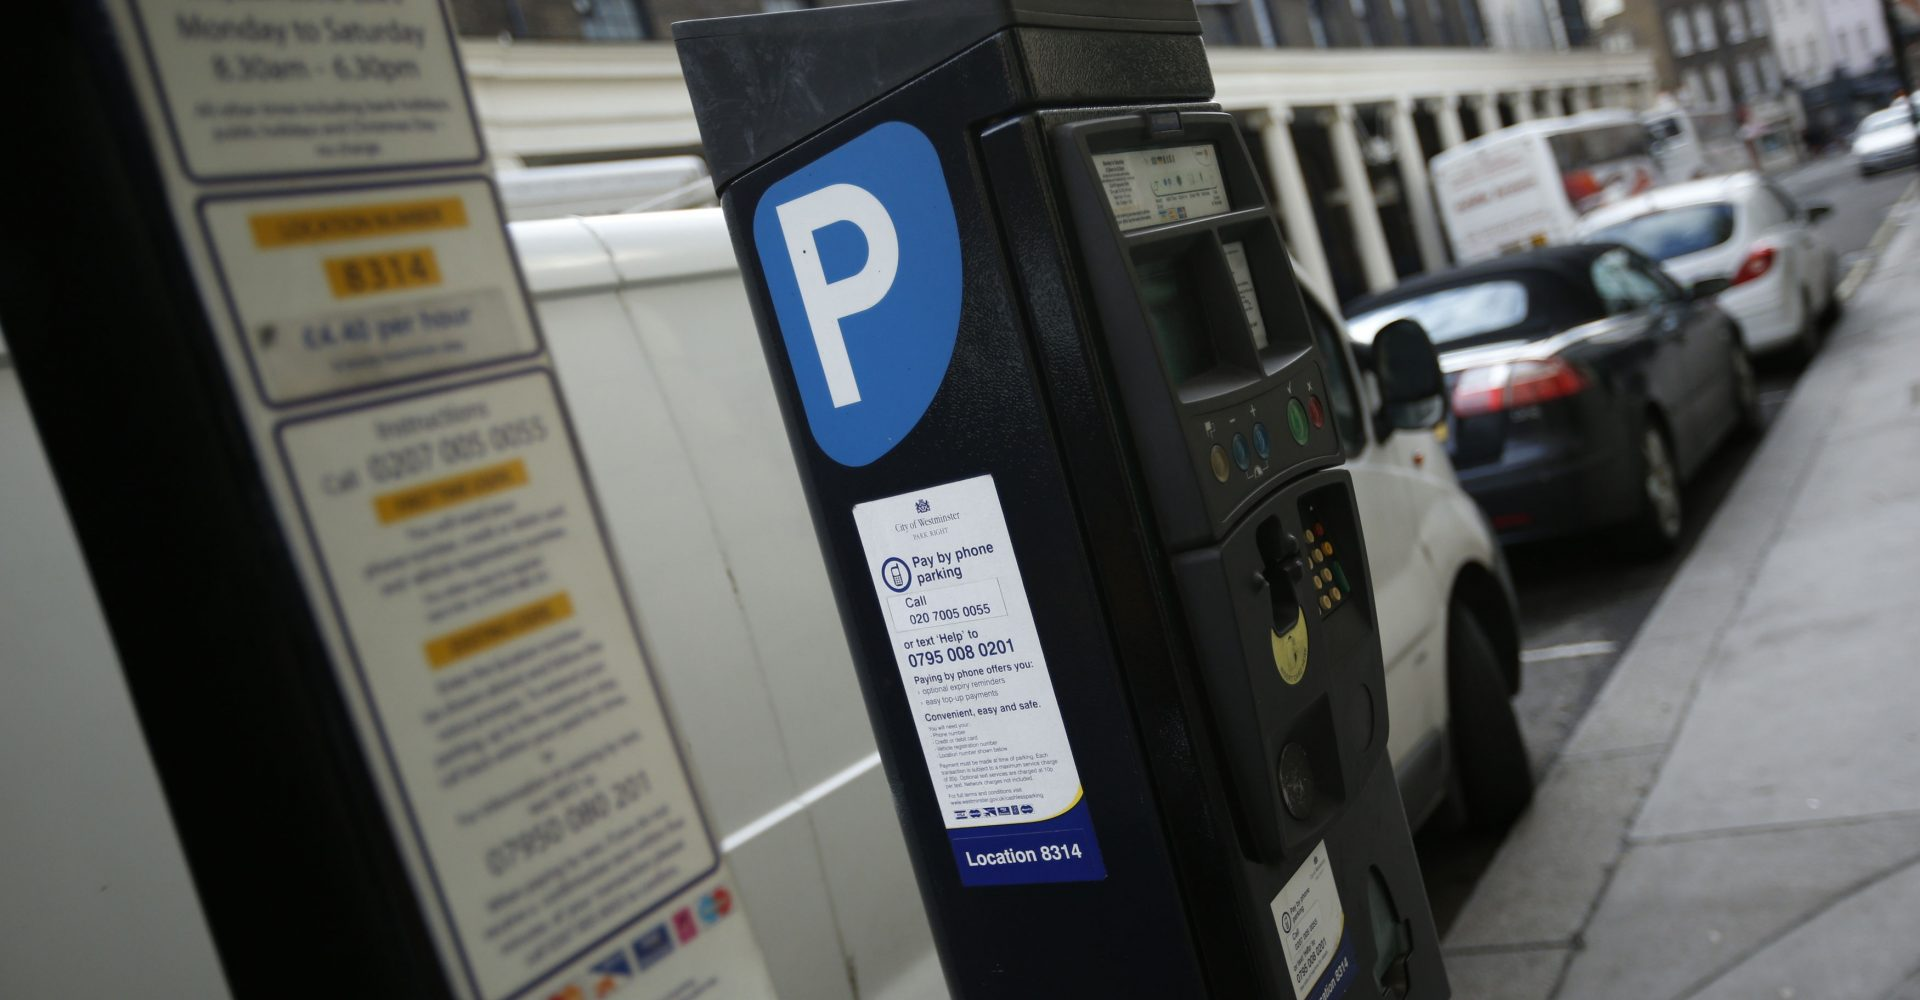 People avoid pay-by-phone parking because cash is king